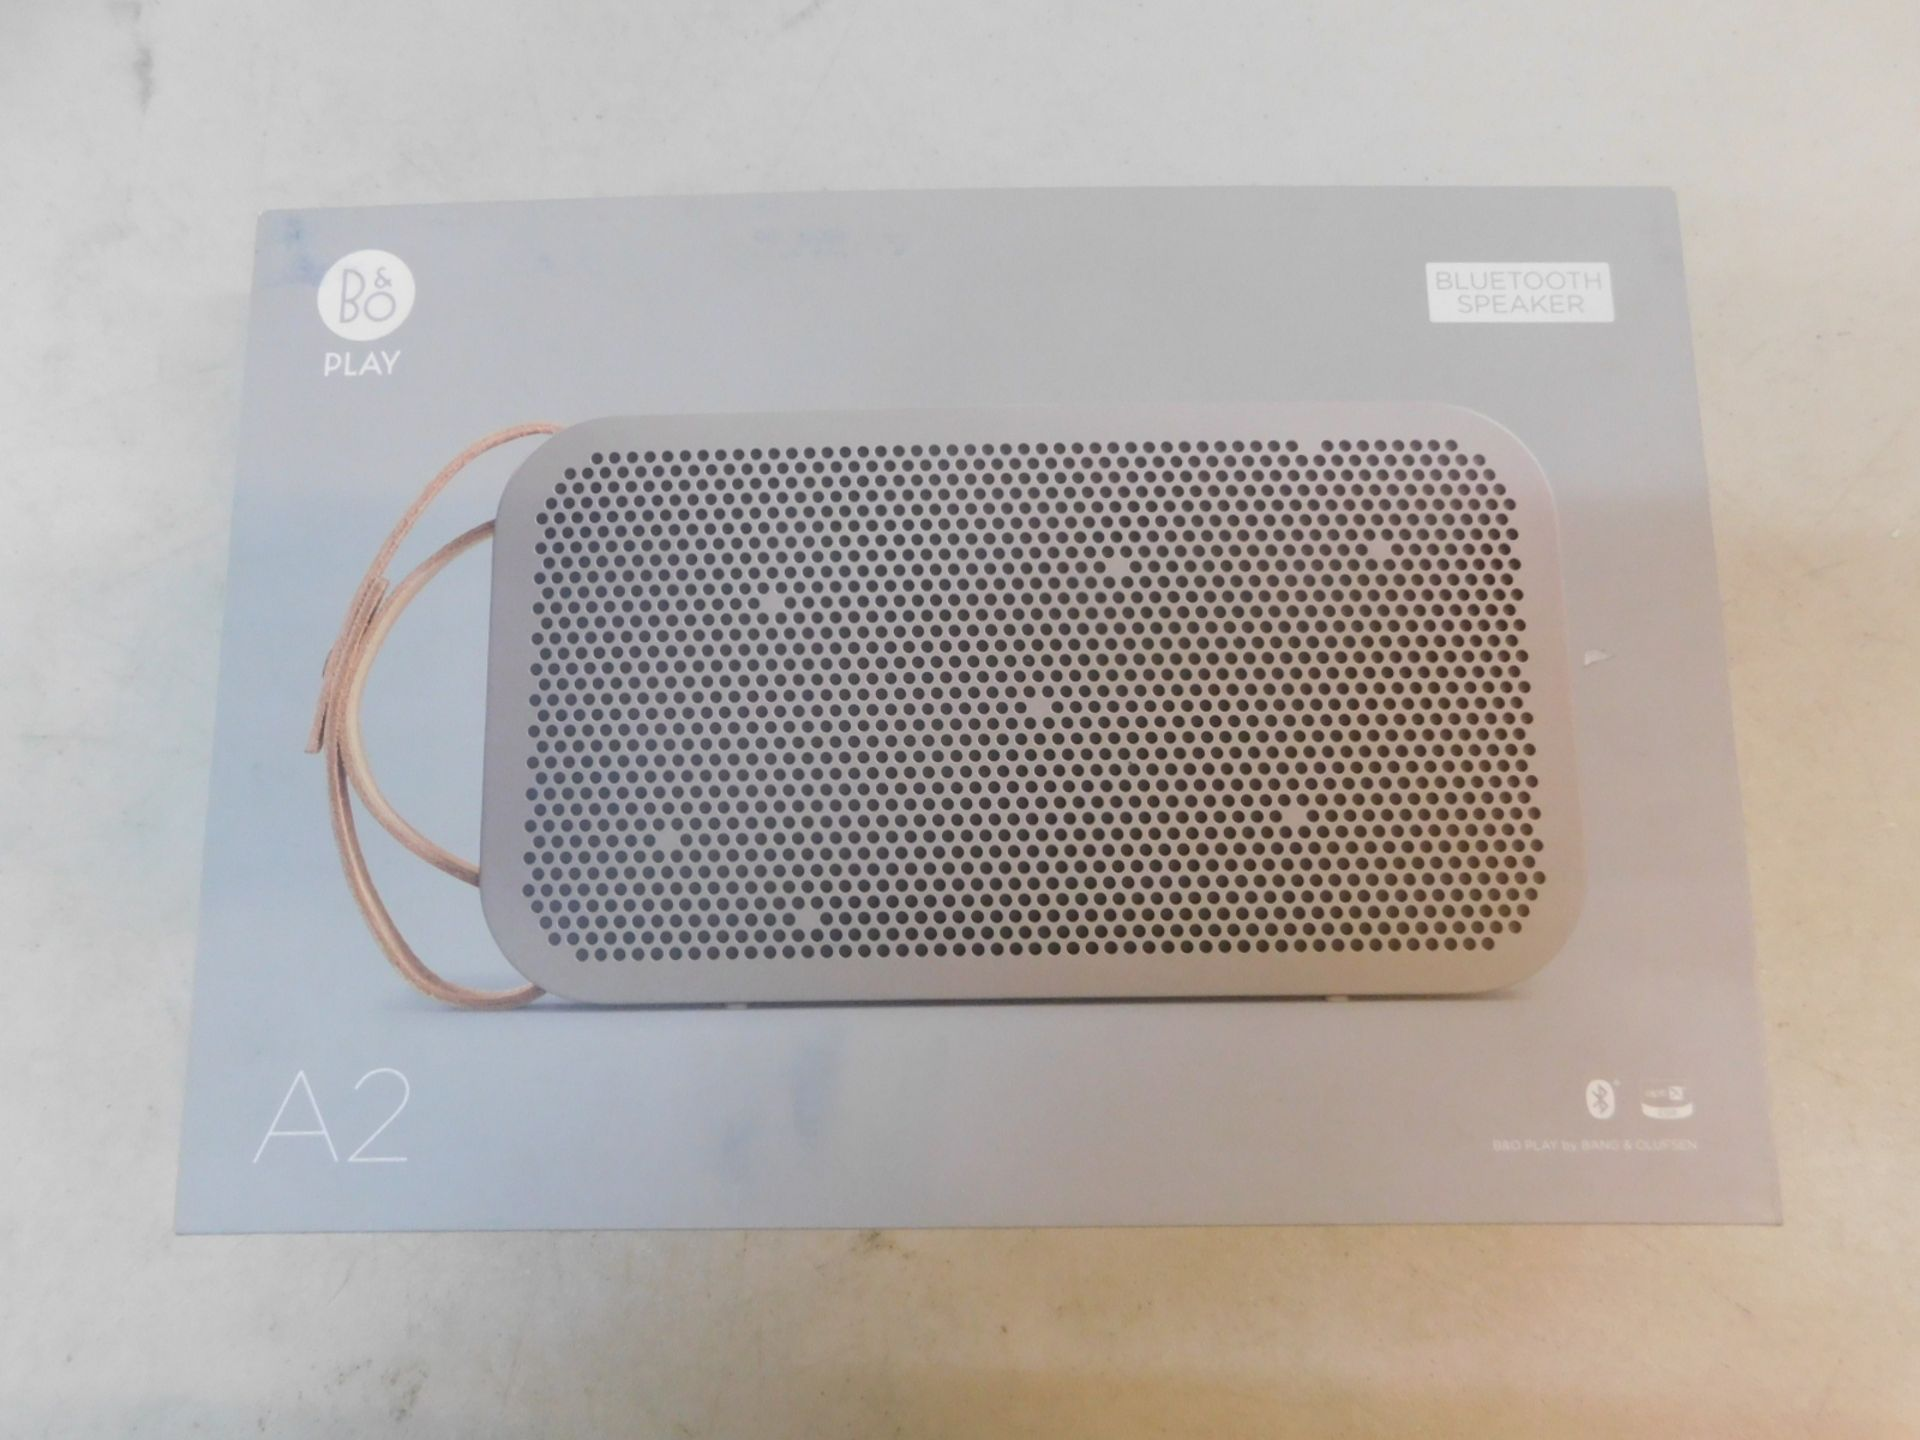 1 BOXED BANG AND OLUFSEN BEOPLAY A2 BLUETOOTH SPEAKER RRP £349